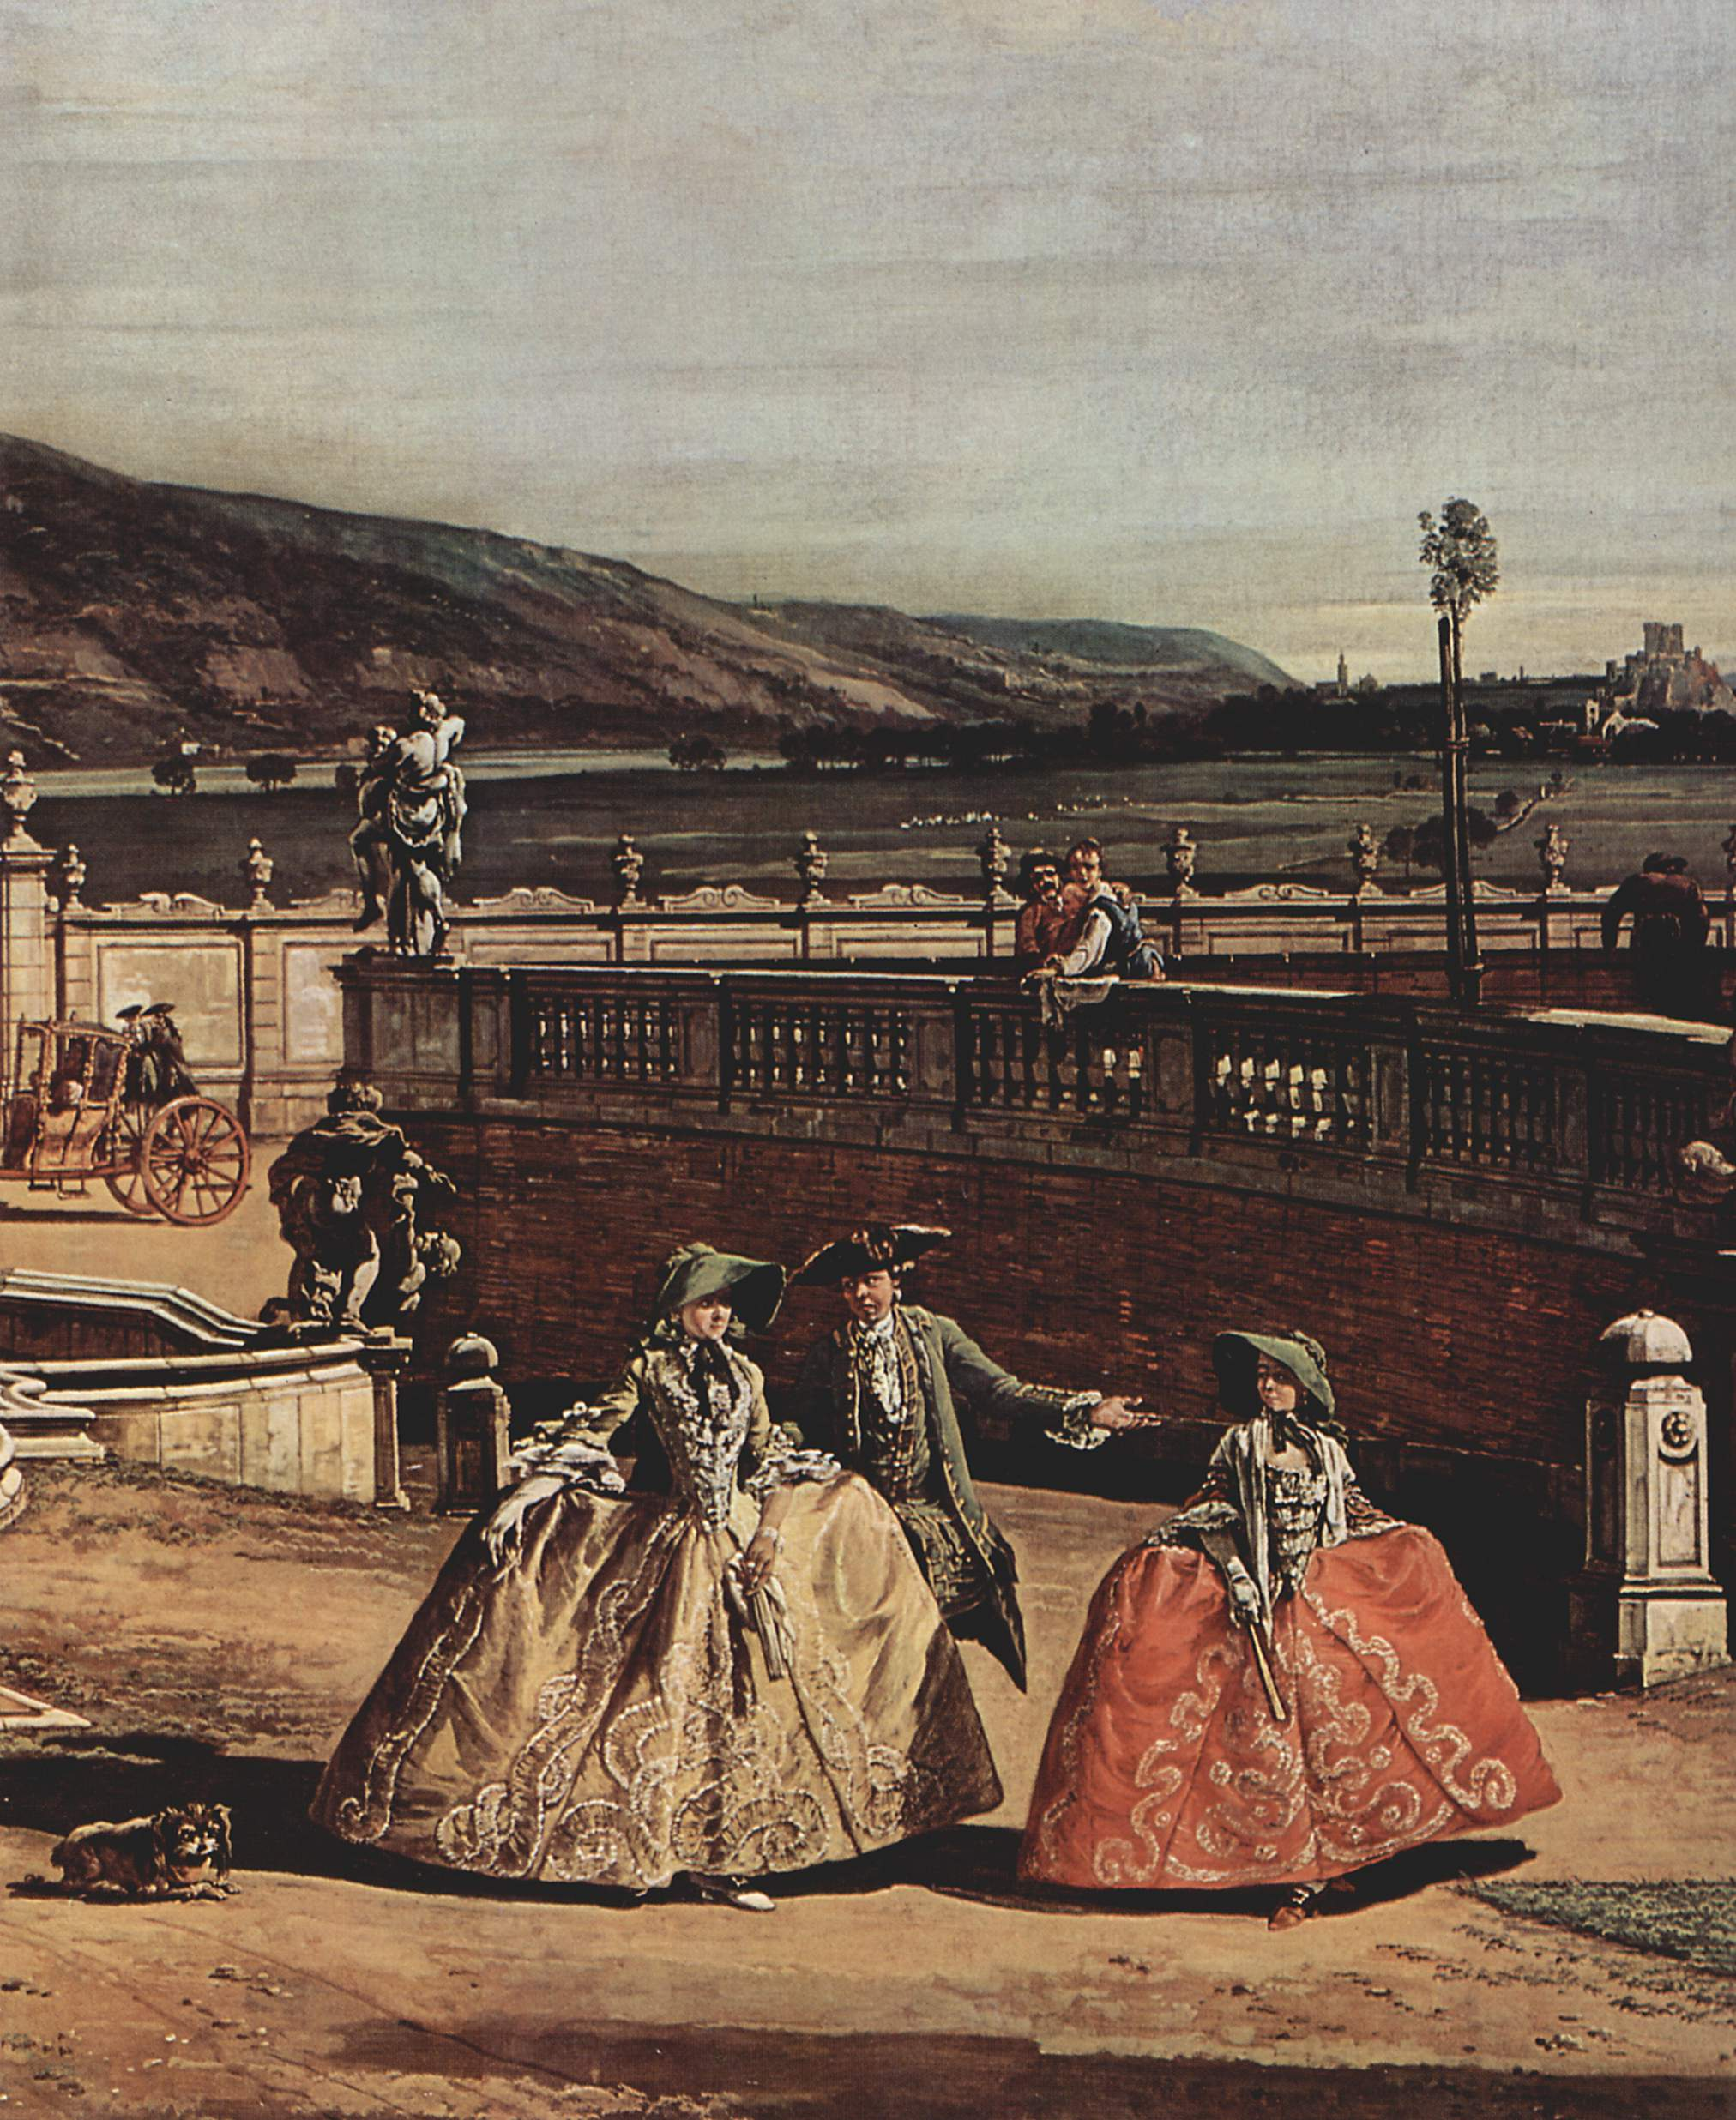 http://upload.wikimedia.org/wikipedia/commons/e/eb/Canaletto_%28I%29_038.jpg